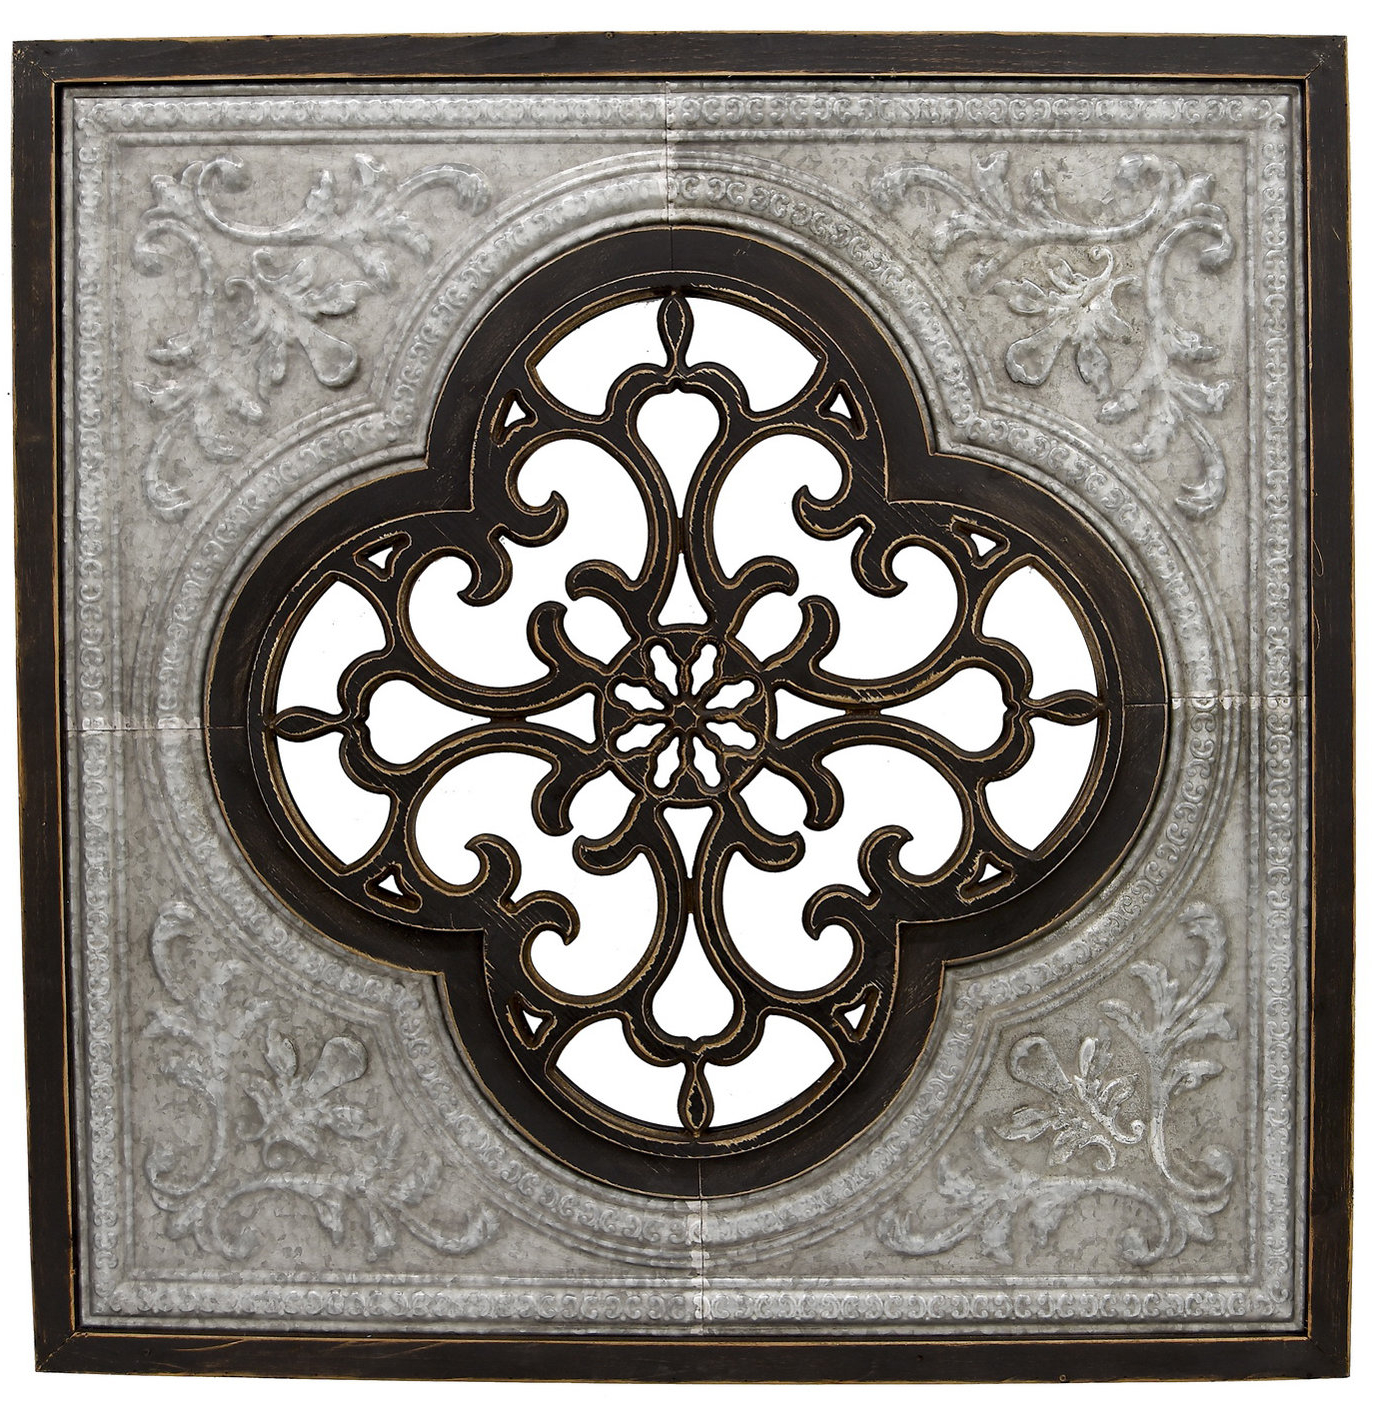 Wayfair Regarding Most Popular 2 Piece Metal Wall Decor Sets By Fleur De Lis Living (Gallery 4 of 20)